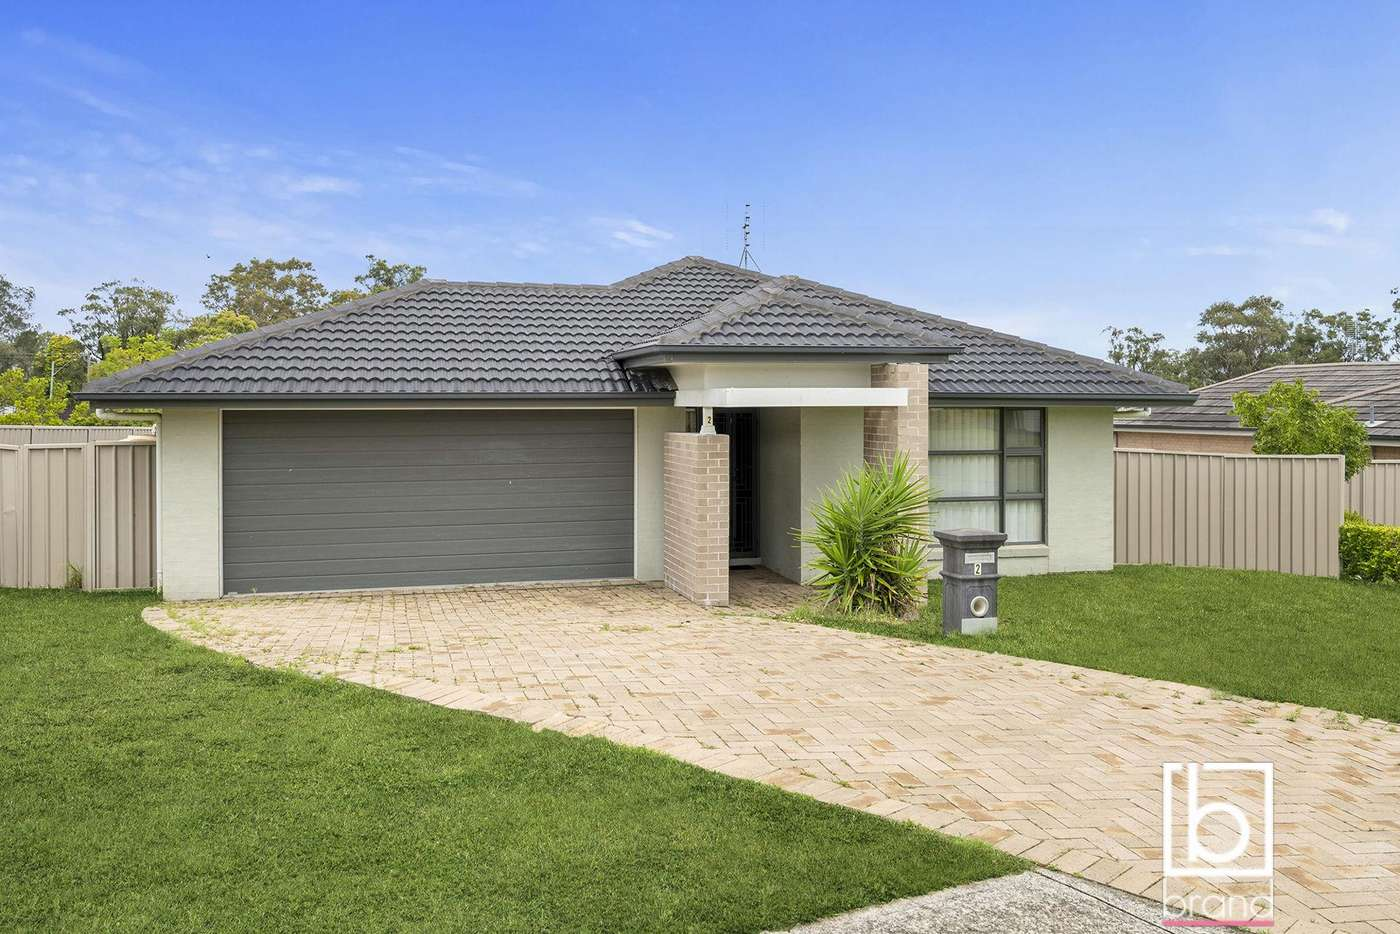 Main view of Homely house listing, 2 Yellow Rose Terrace, Hamlyn Terrace NSW 2259